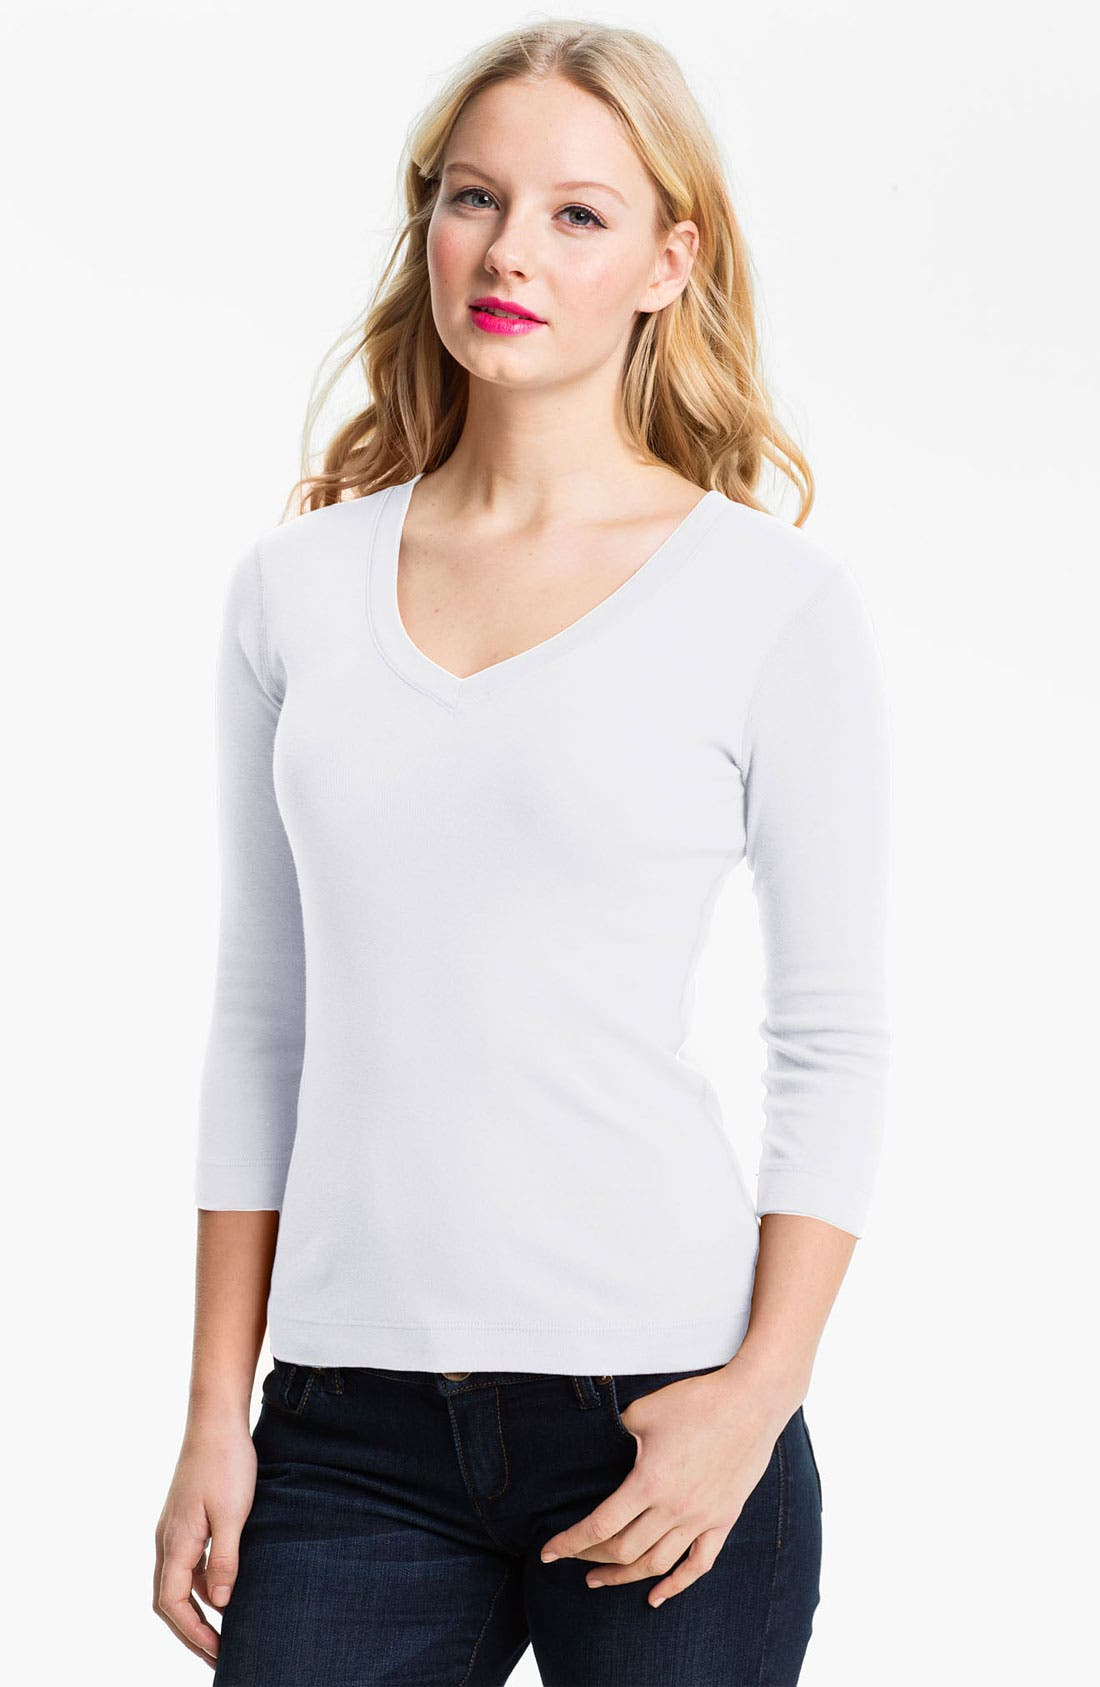 Alternate Image 1 Selected - Three Dots Deep V-Neck Three Quarter Sleeve Tee (Online Exclusive)